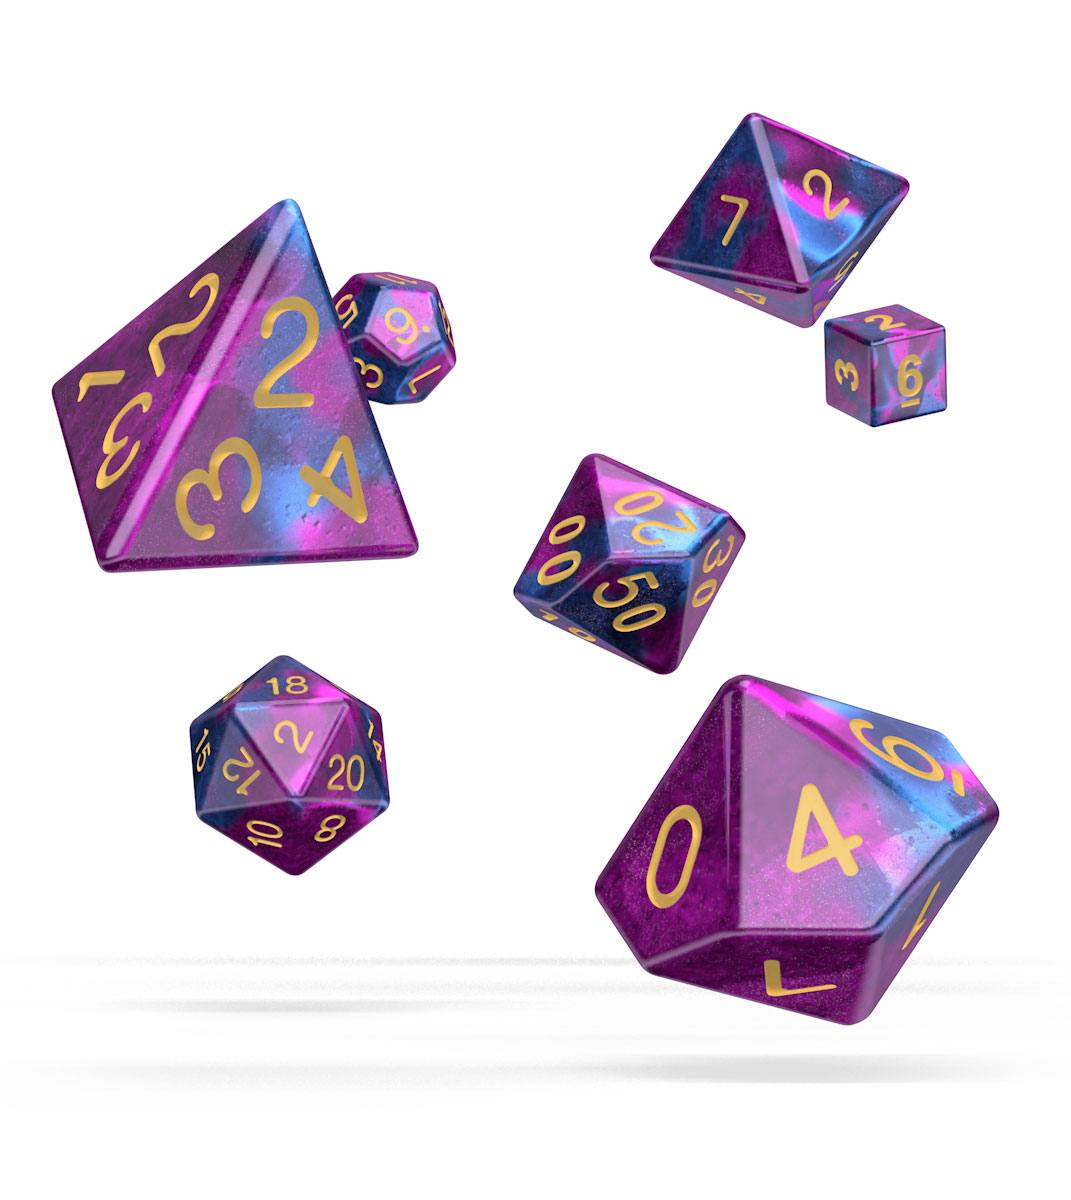 Kocka Set (7) - Oakie Doakie Dice RPG Set Gemidice - Amethyst